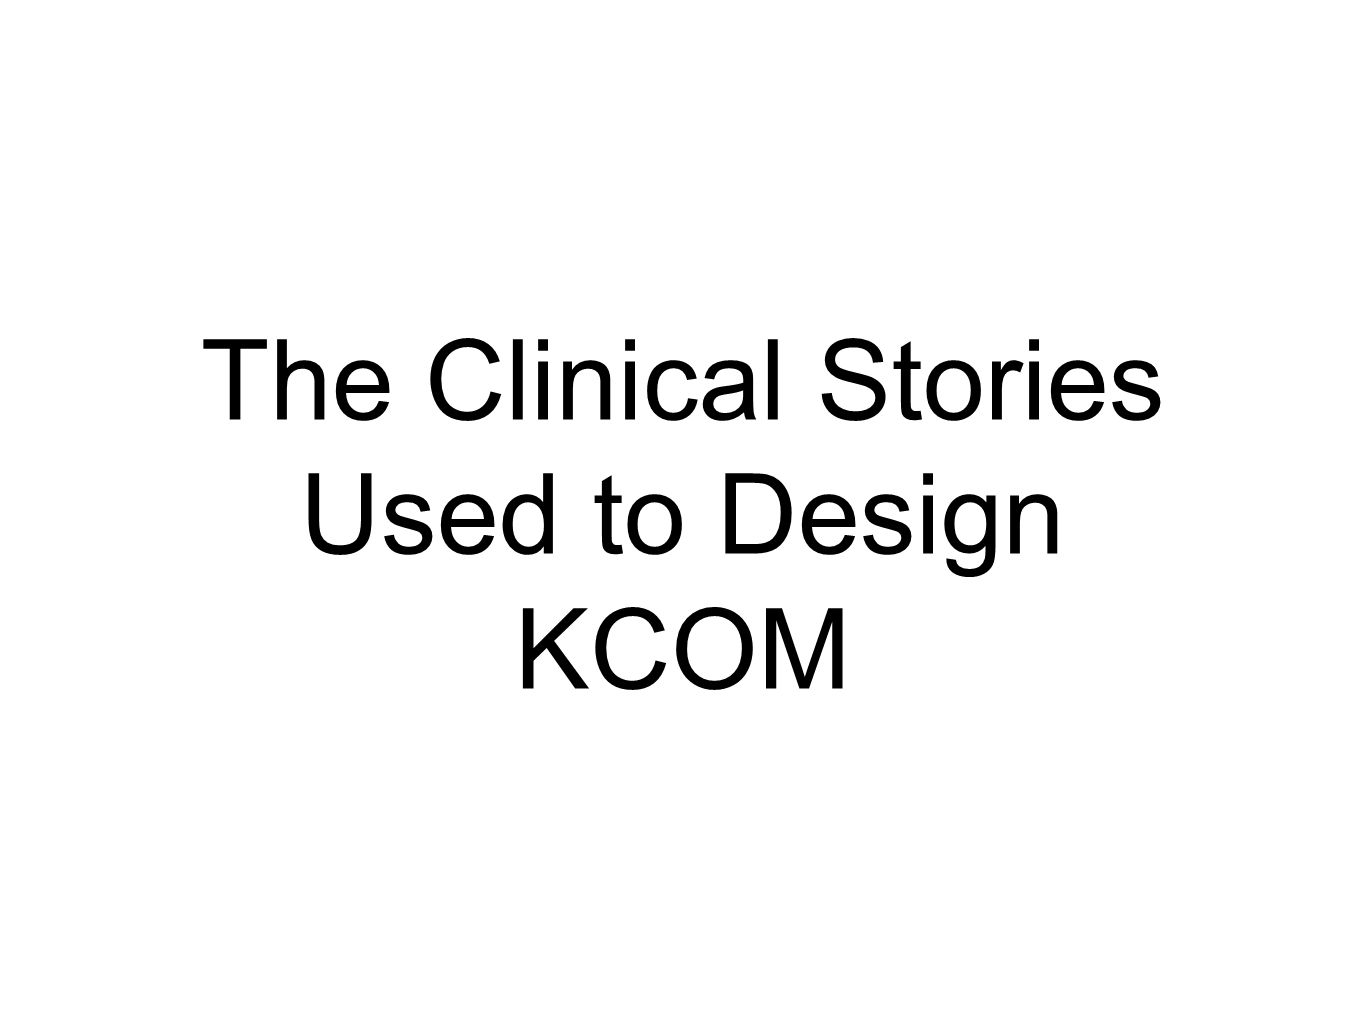 The Clinical Stories Used to Design KCOM